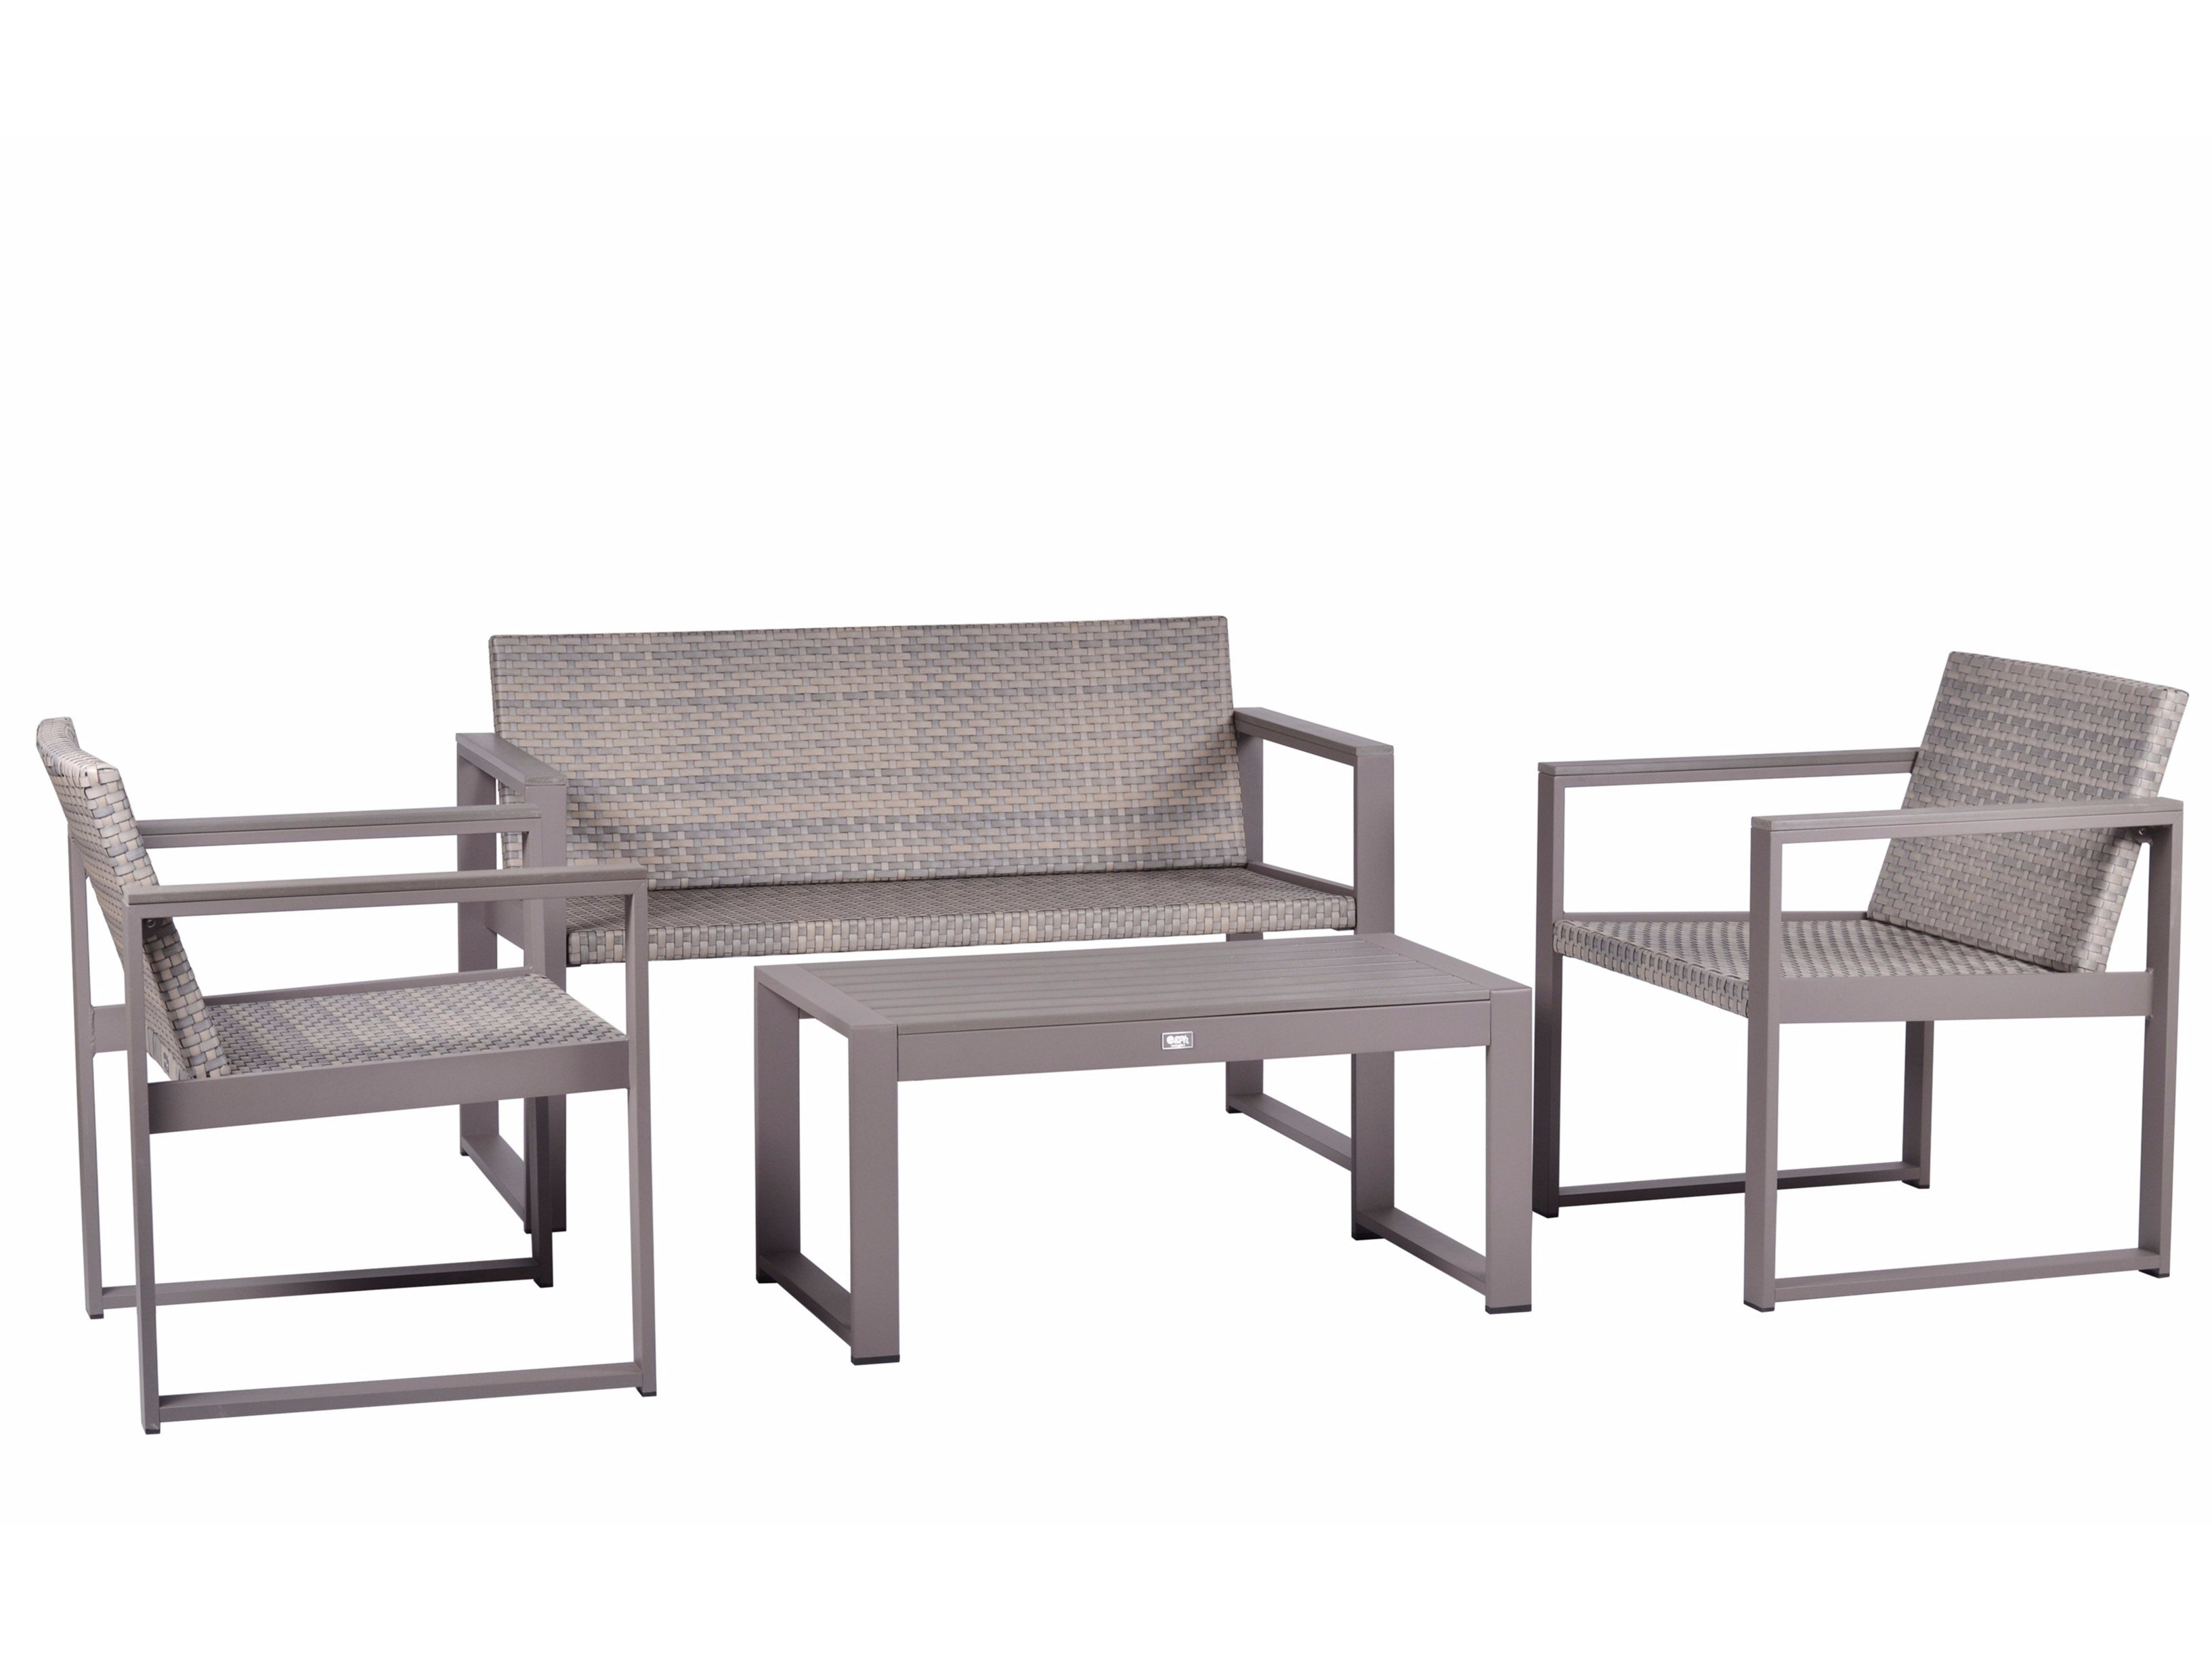 Outdoor furniture by Mediterraneo by GPB